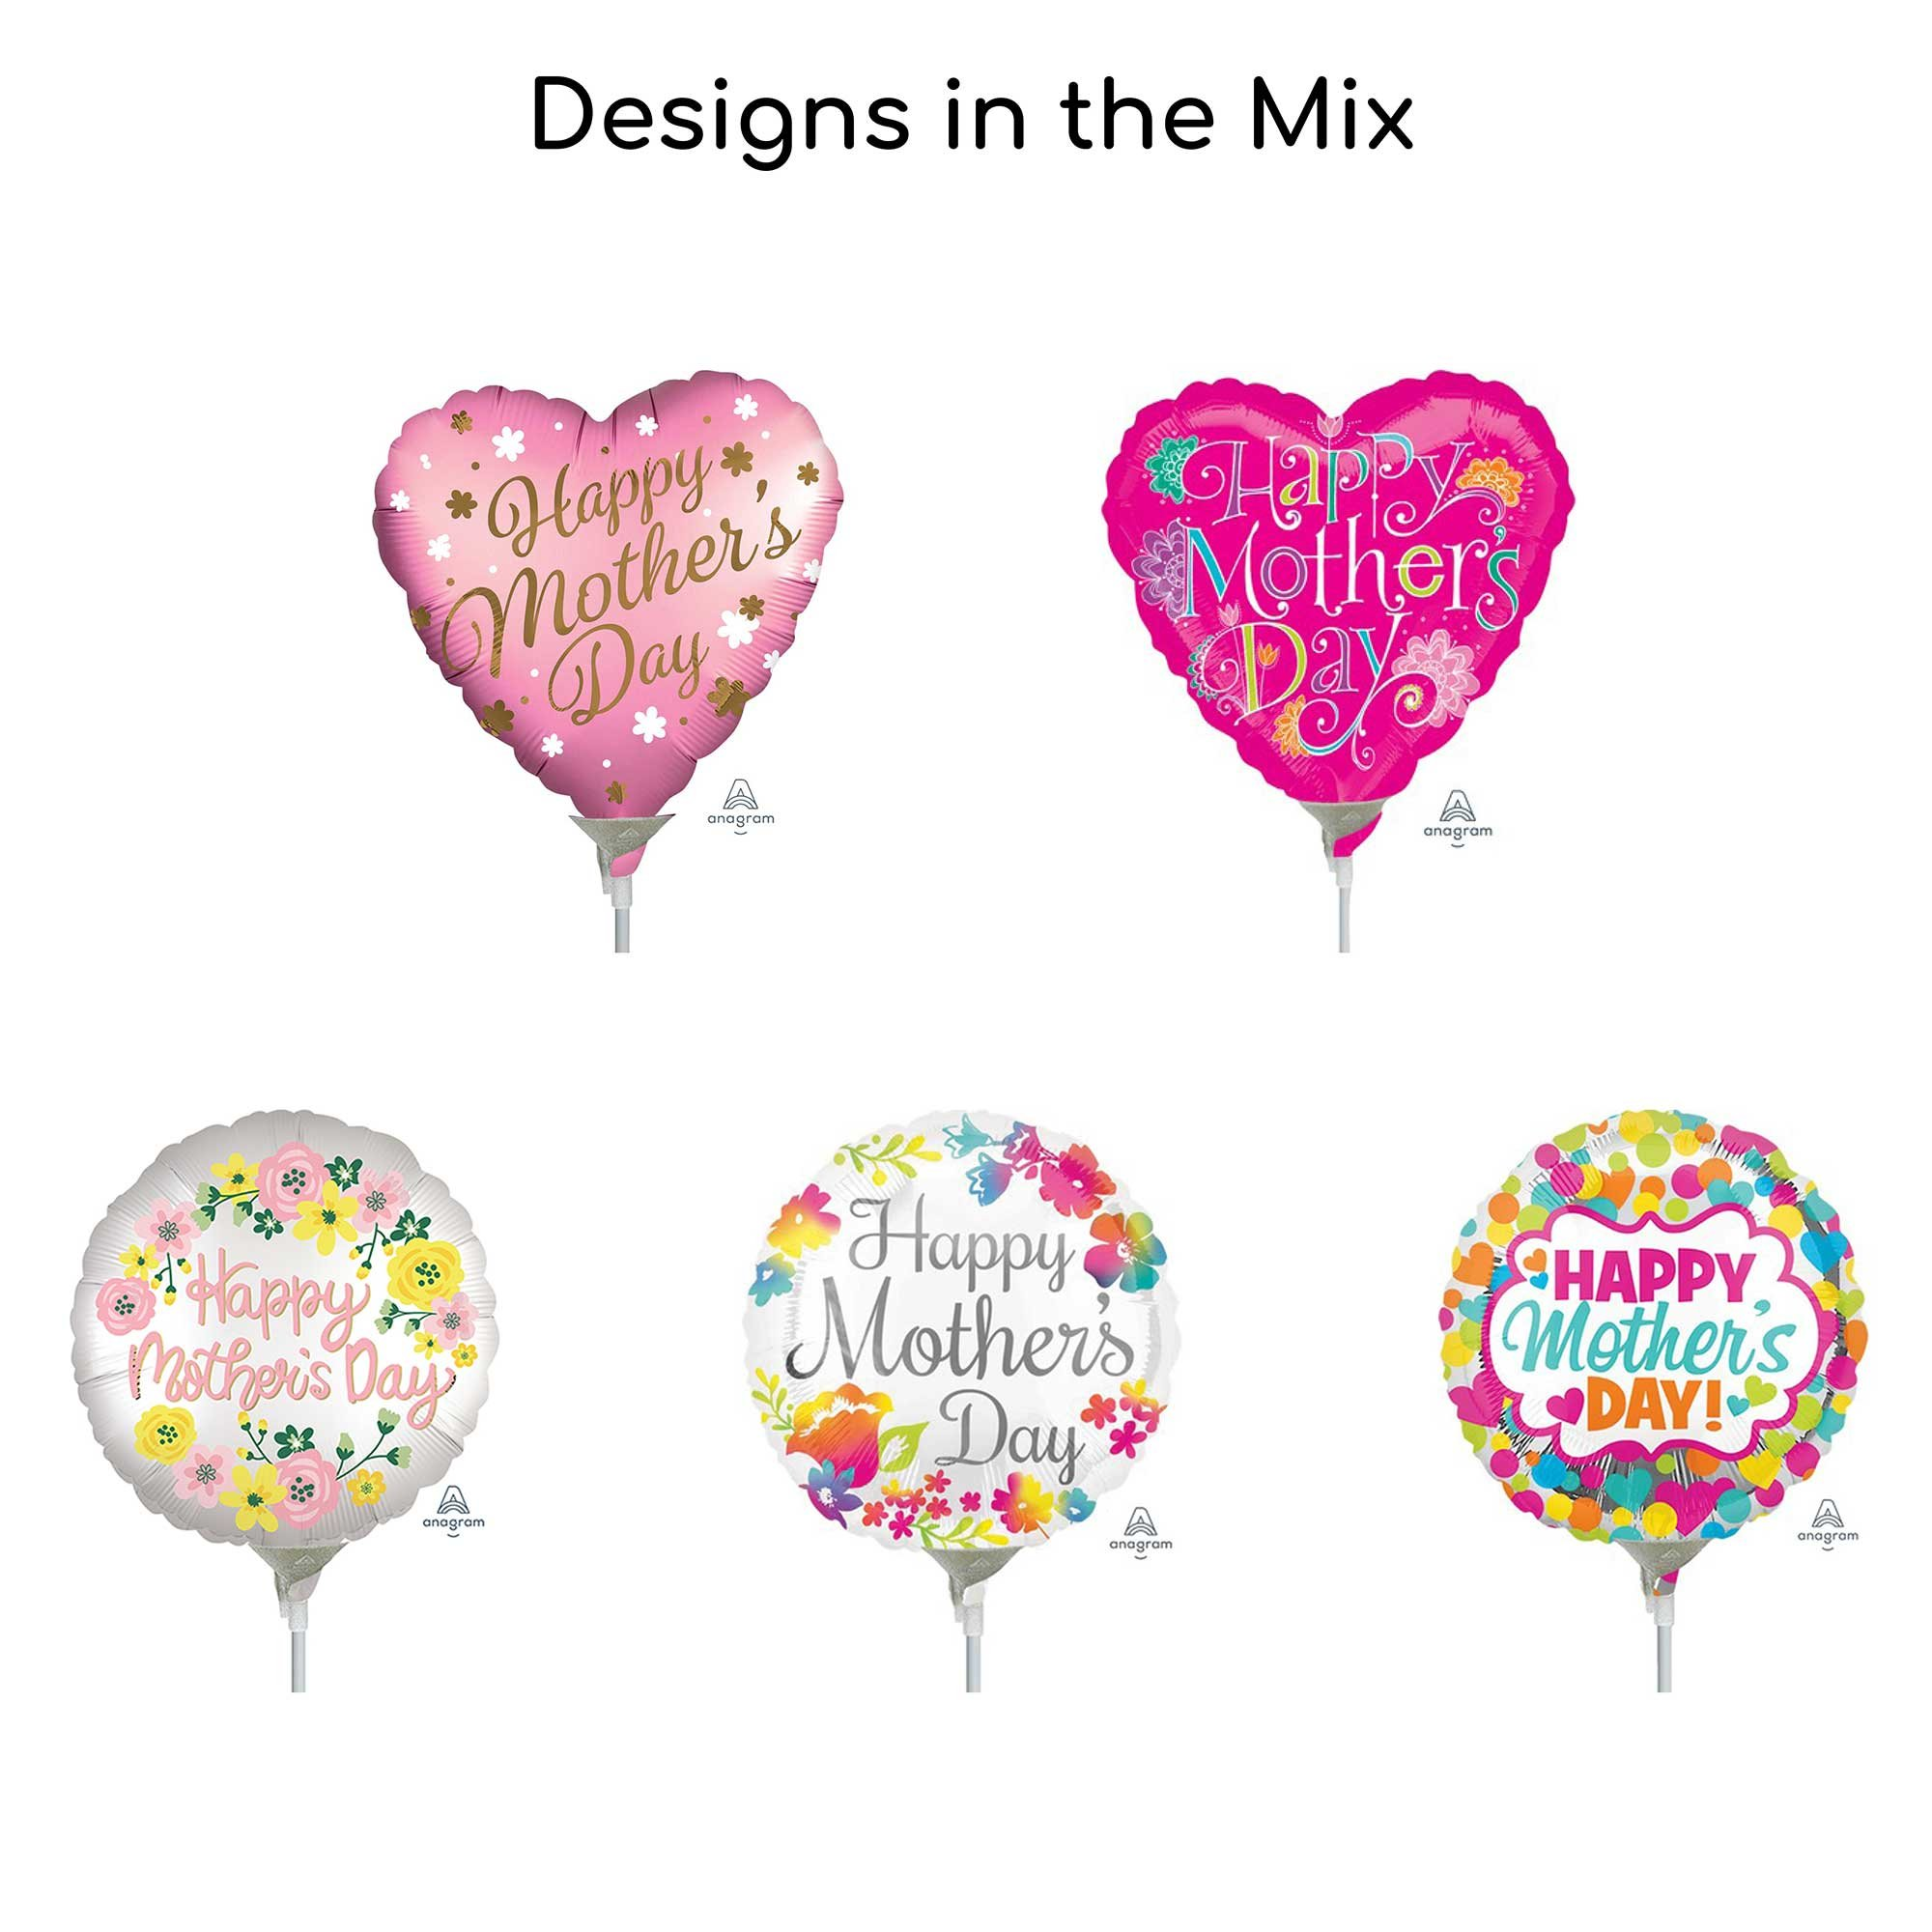 22cm Happy Mother's Day Balloon Mix 1 (25 balloons)